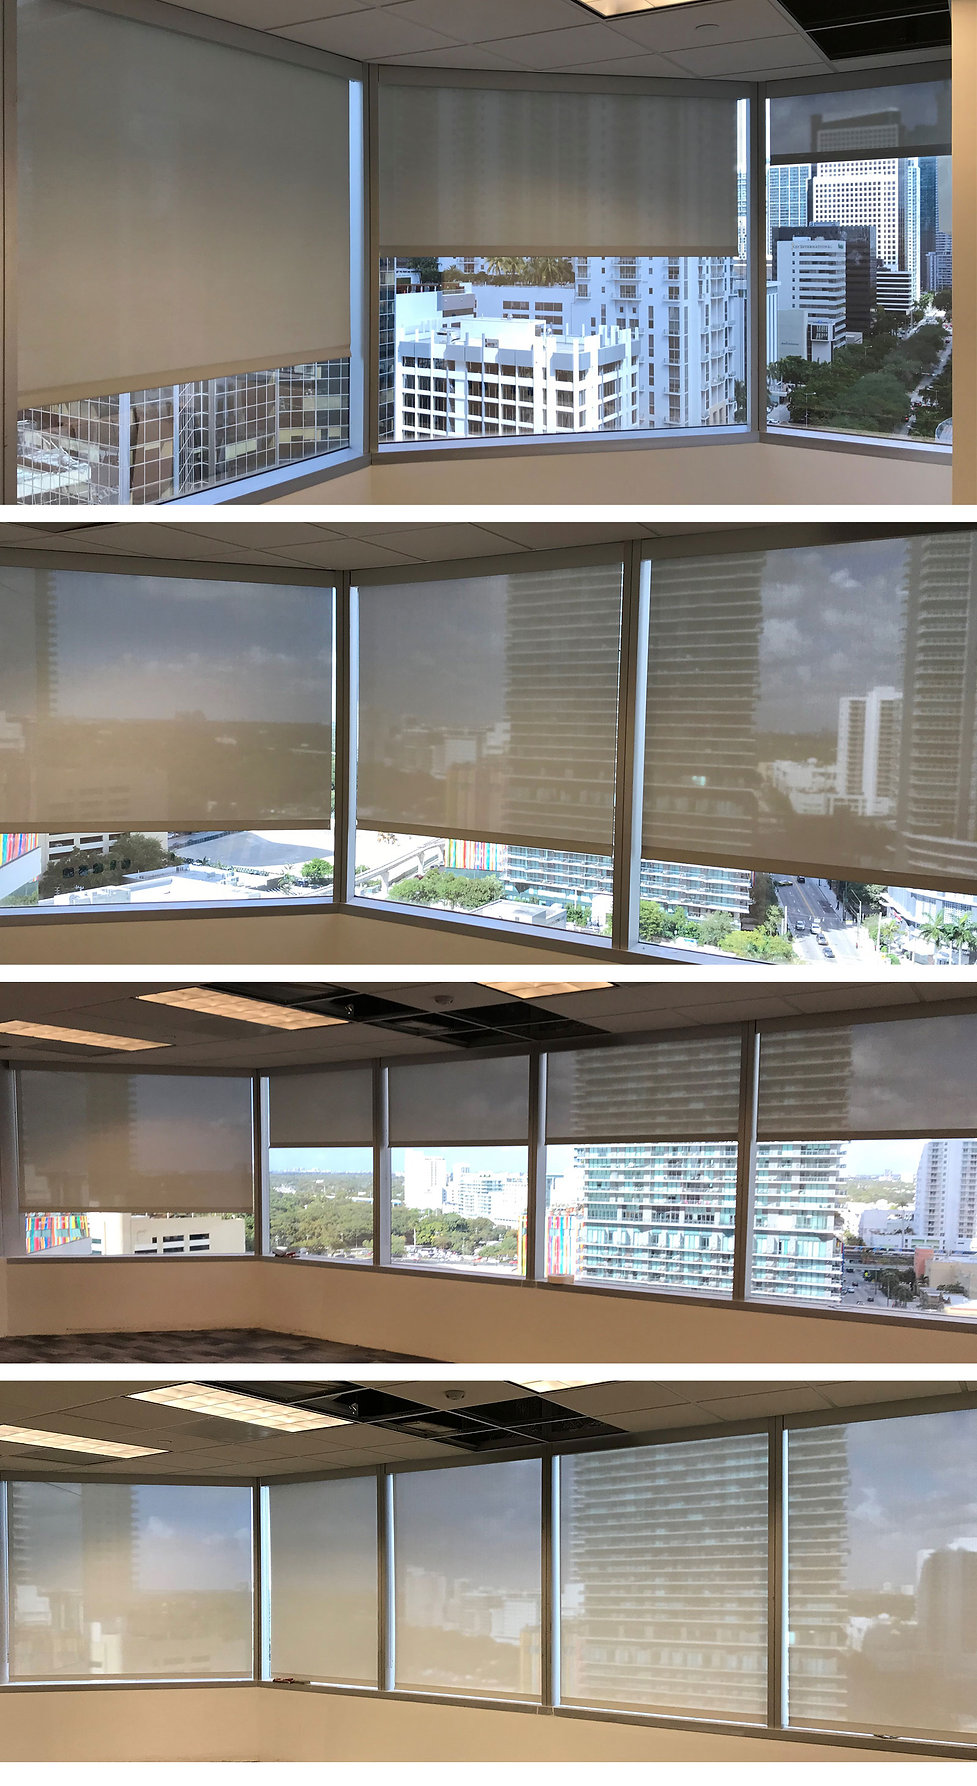 qbe-insurance-roller-shades-brickell.jpg